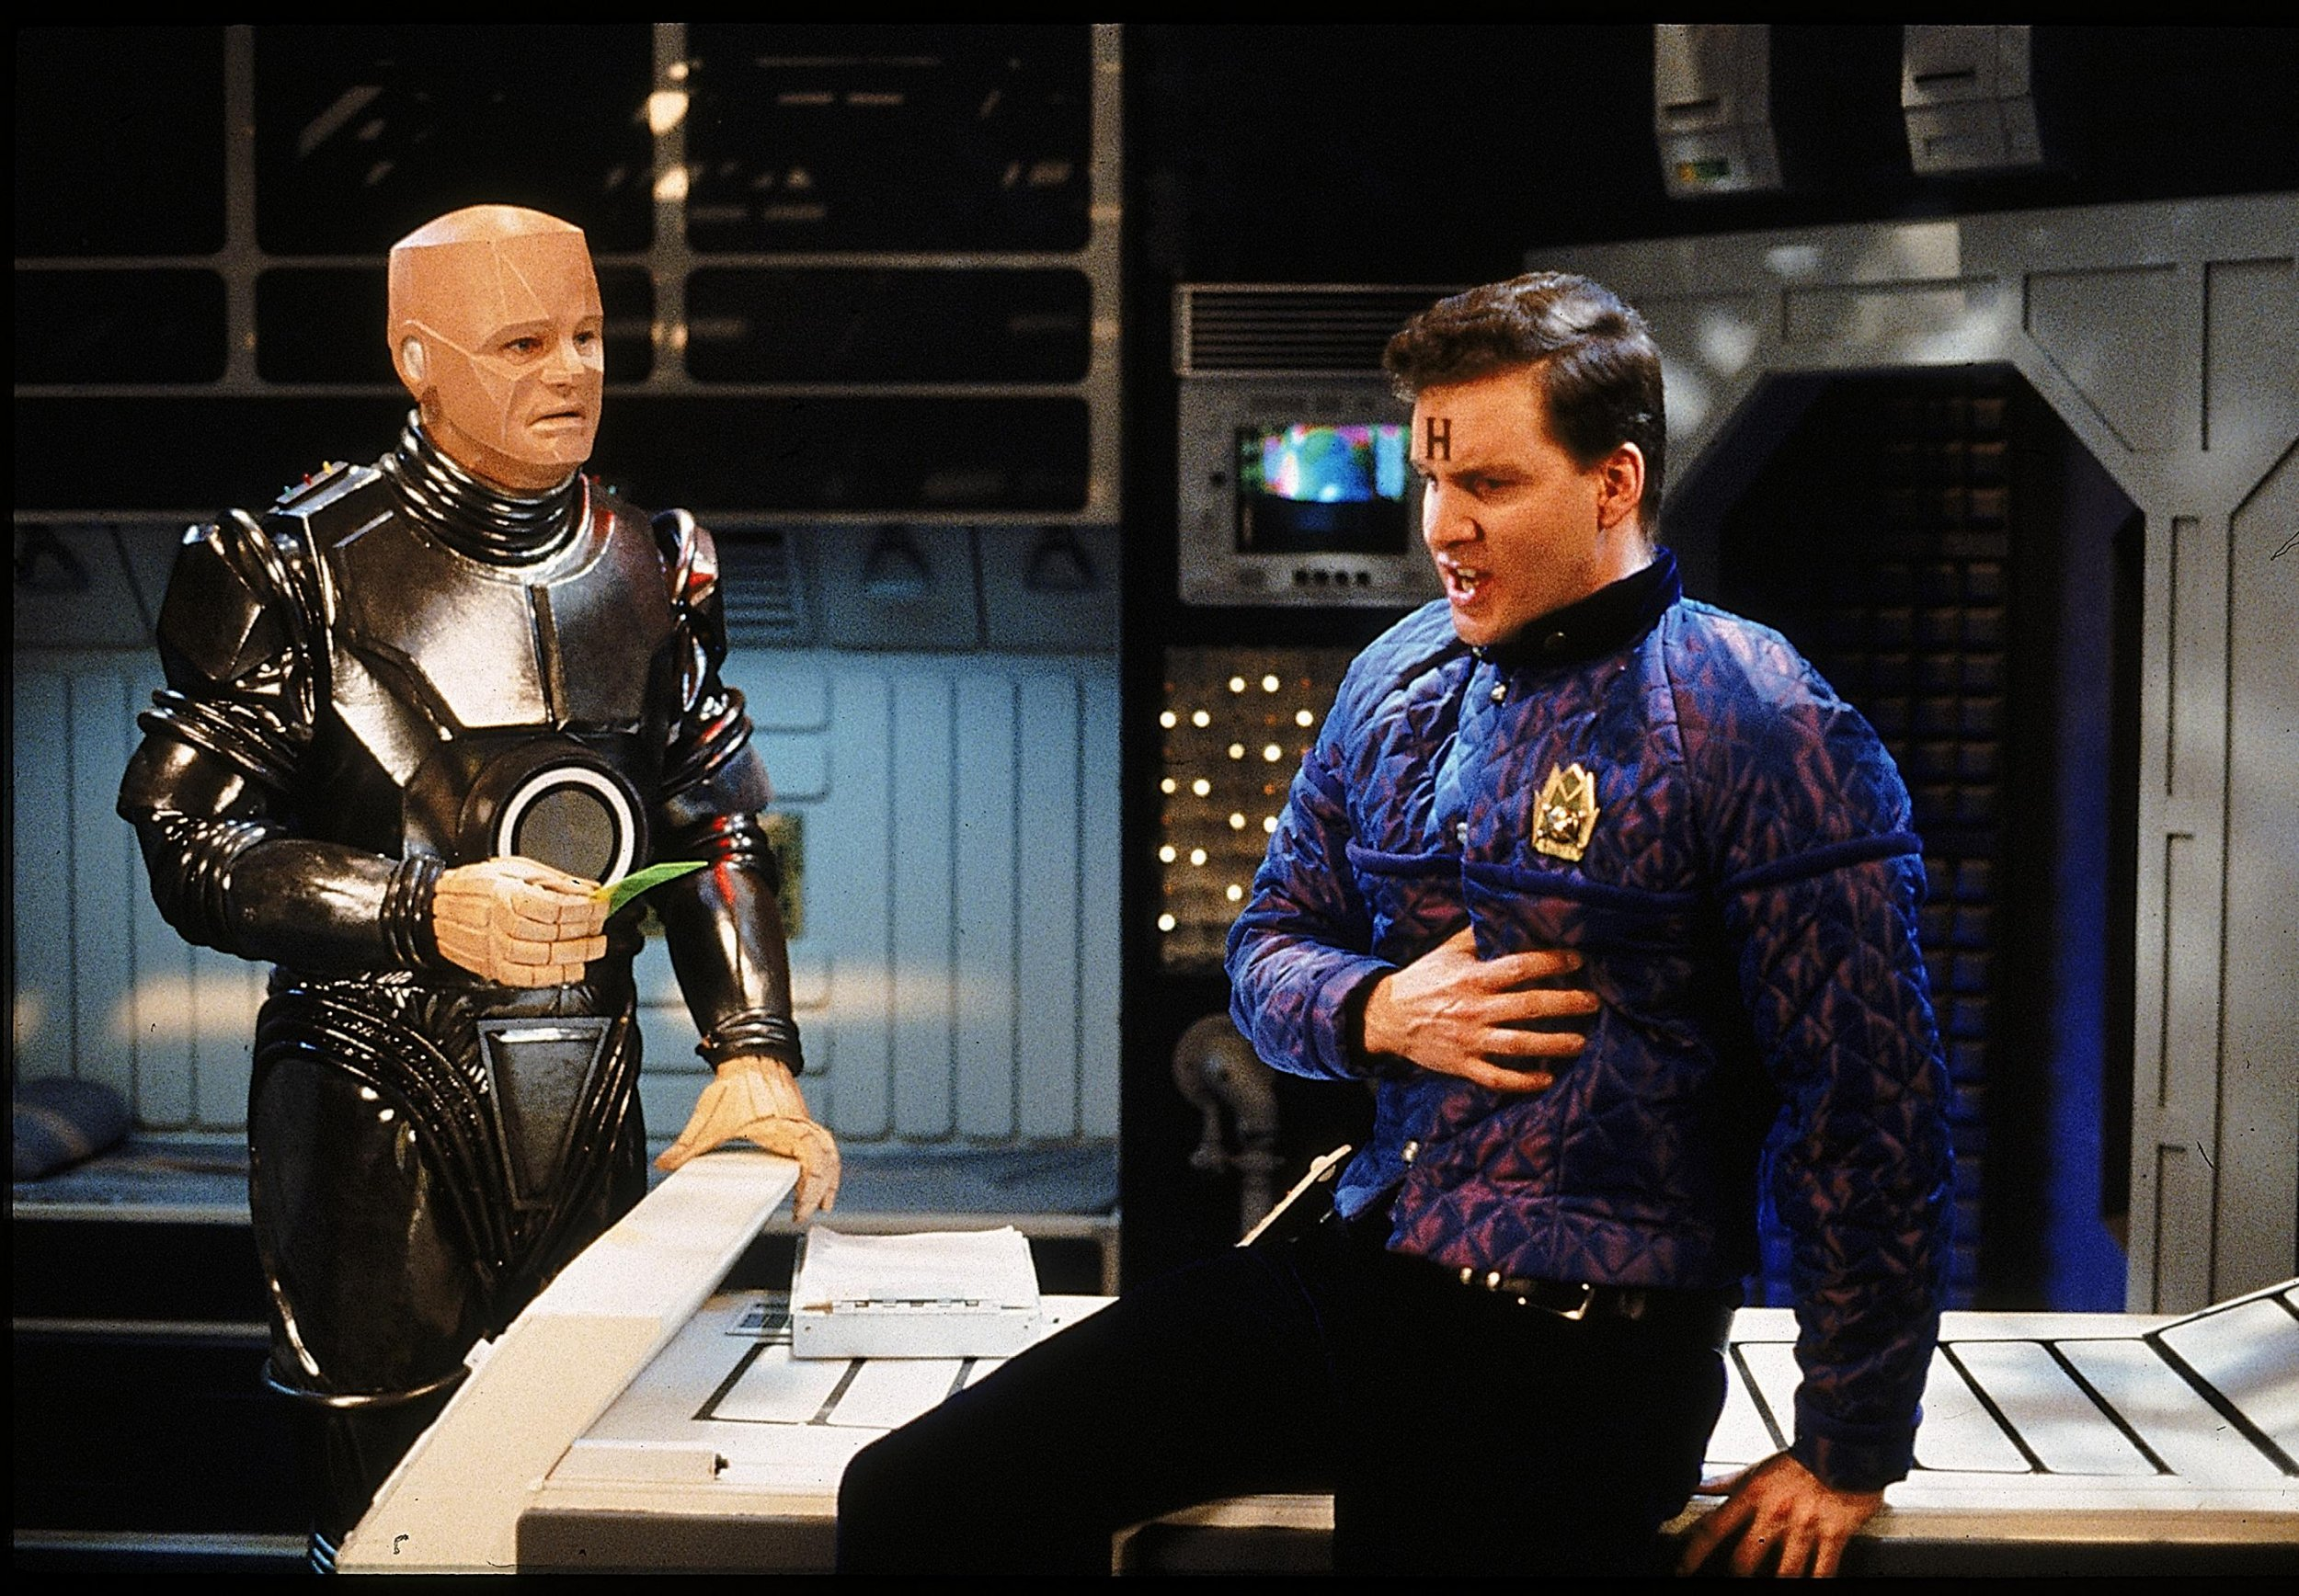 A scene from the television programme Red Dwarf, starring Robert Llewellyn as Kryton and Chris Barrie as Arnold Rimmer.